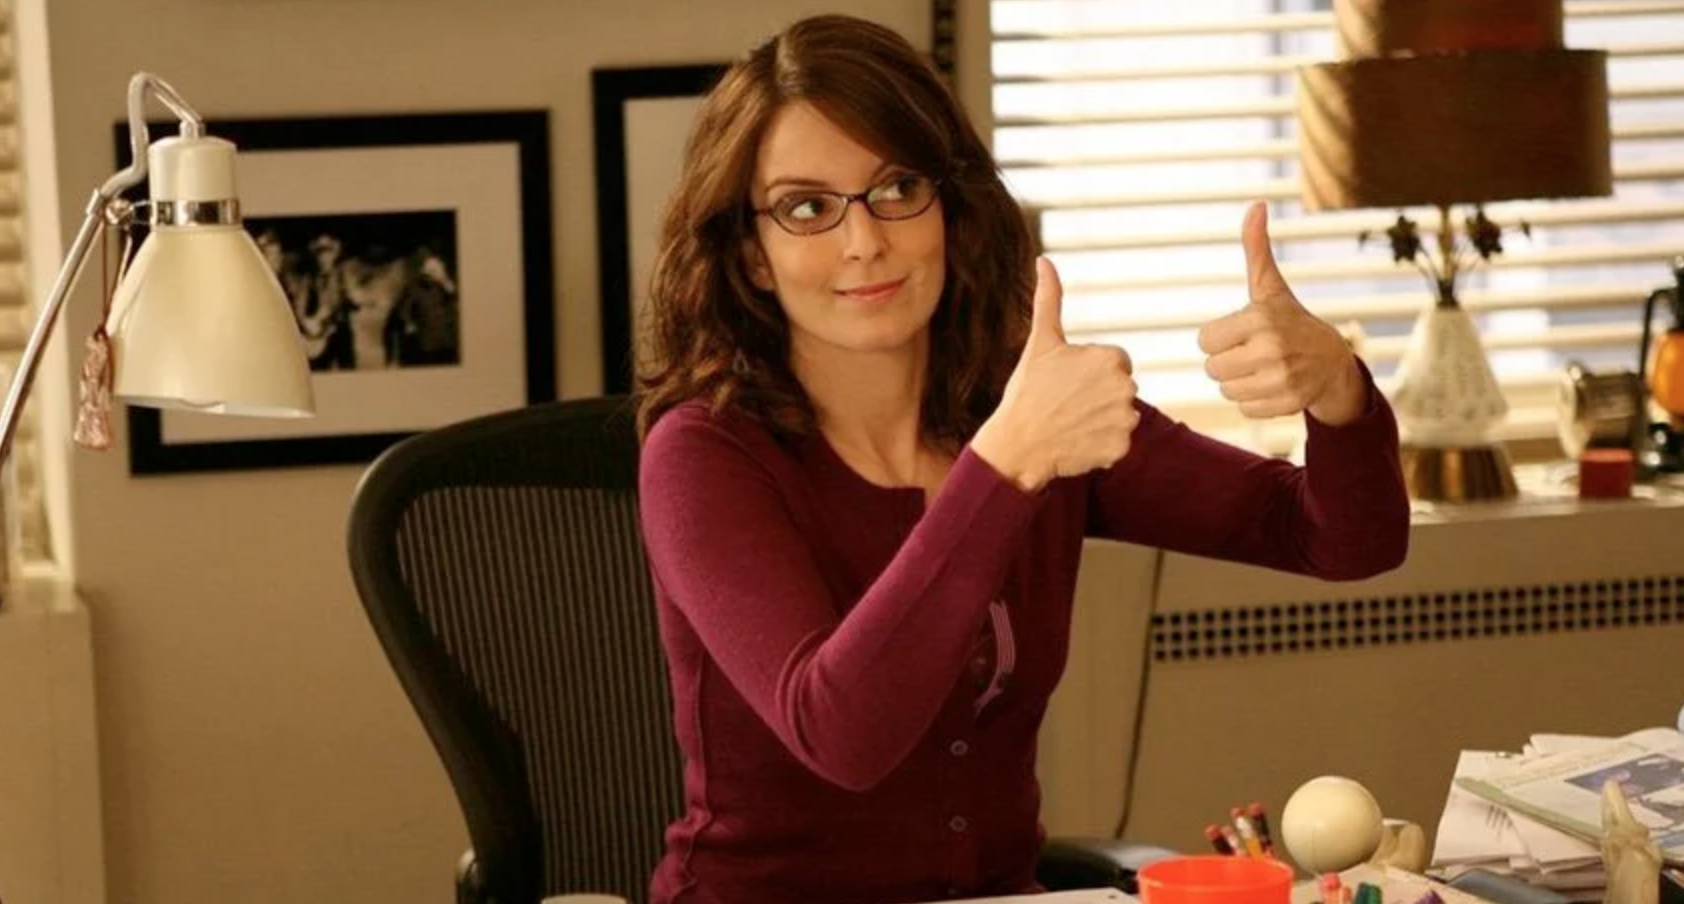 Tina Fey says she's brainstorming ideas for a 30 Rock revival